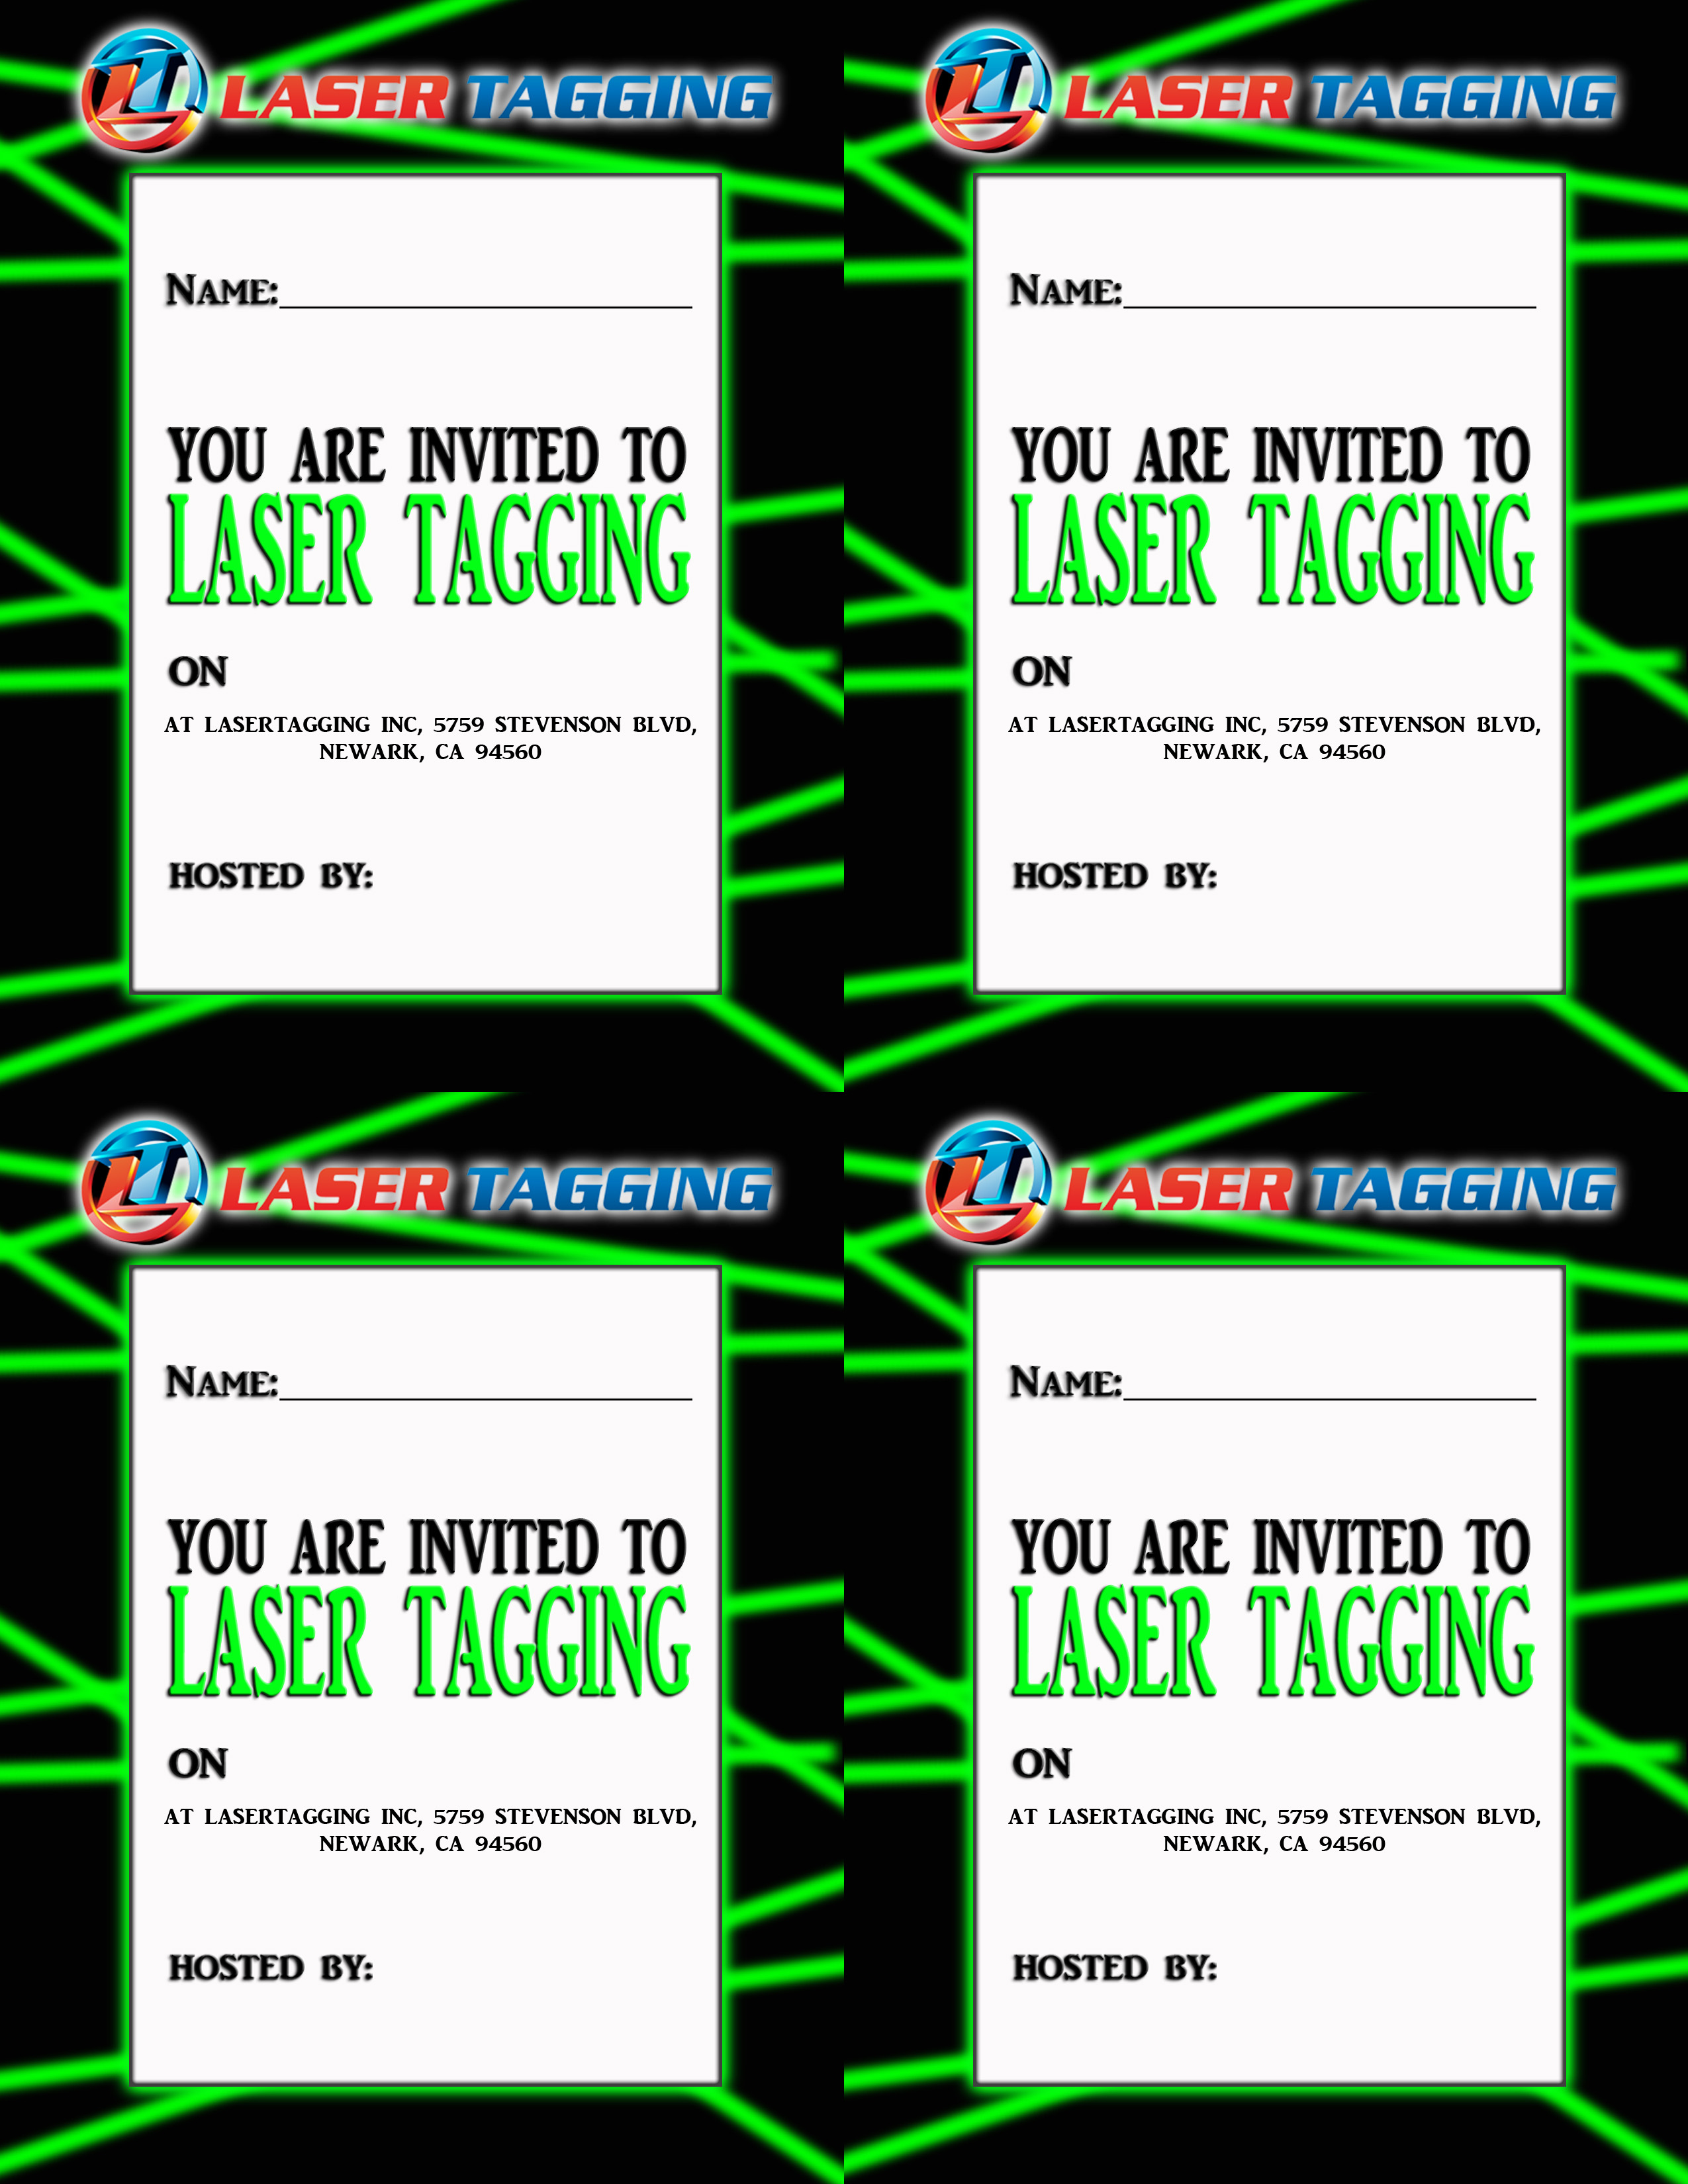 ... invitations for your laser tagging event! Click here for free